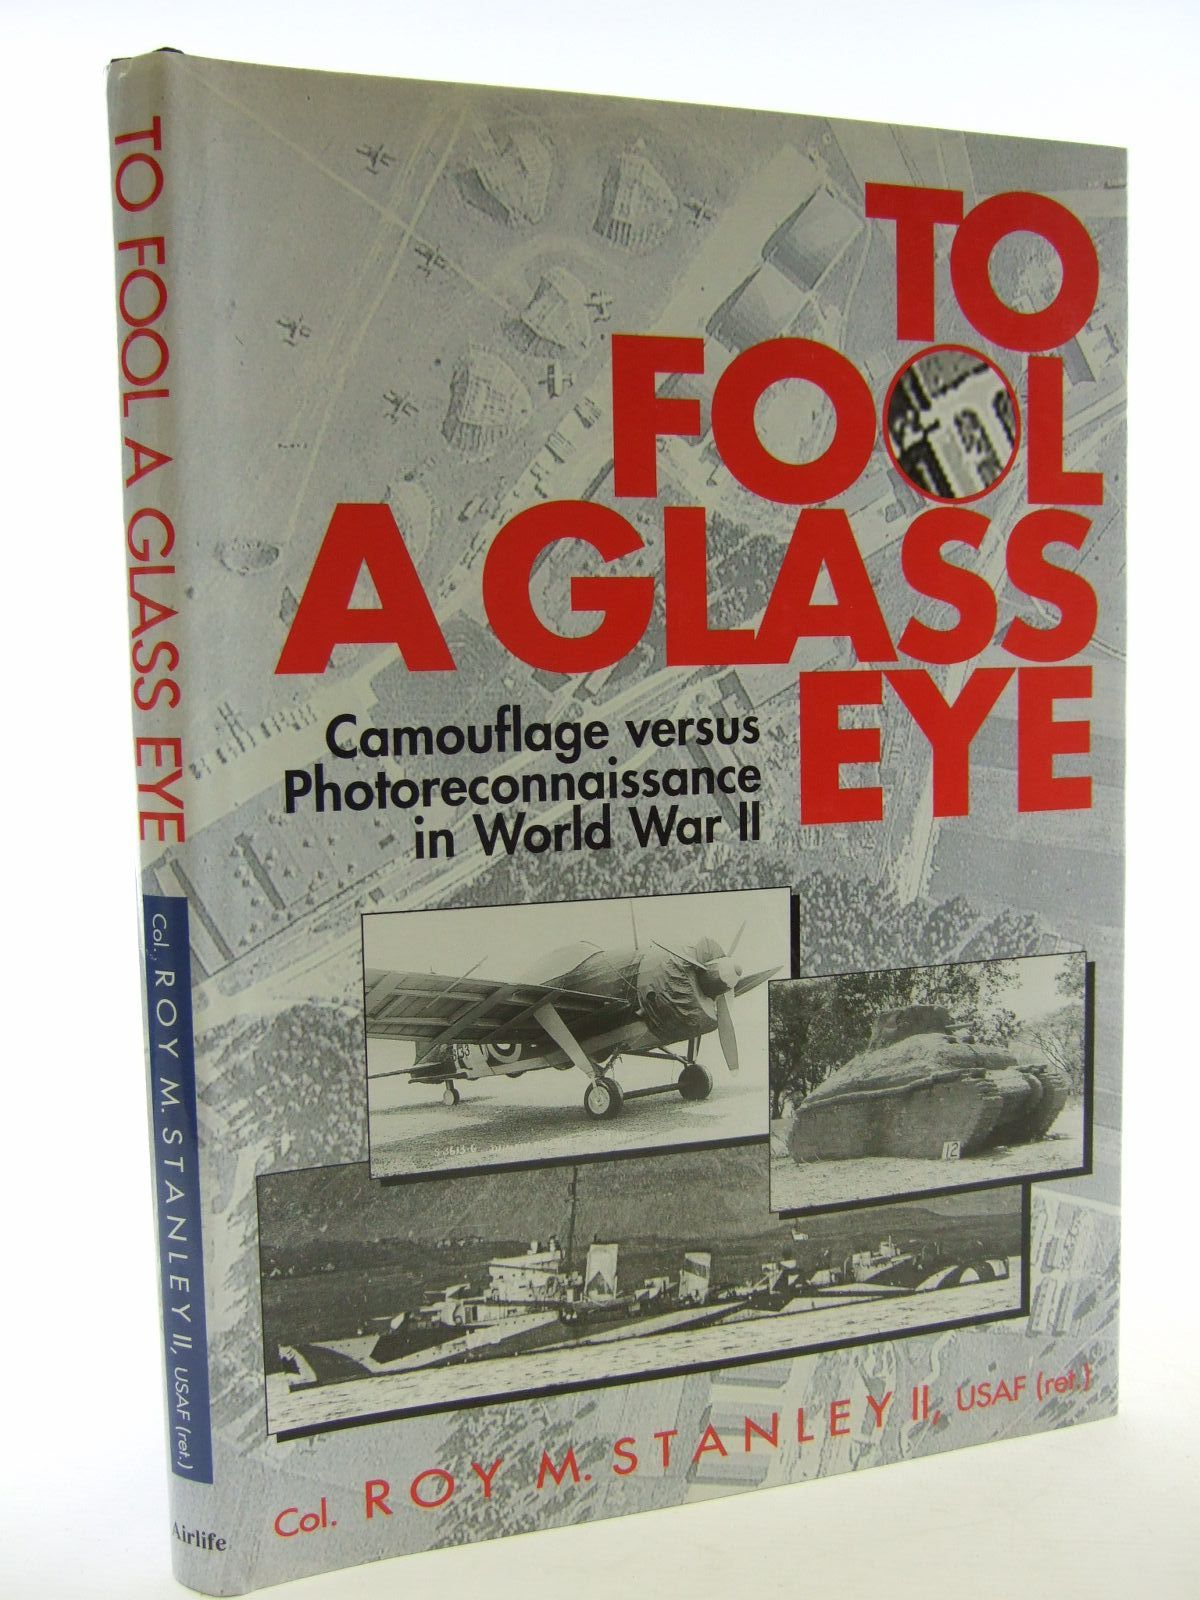 Photo of TO FOOL A GLASS EYE written by Stanley, Roy M. published by Airlife (STOCK CODE: 1706396)  for sale by Stella & Rose's Books